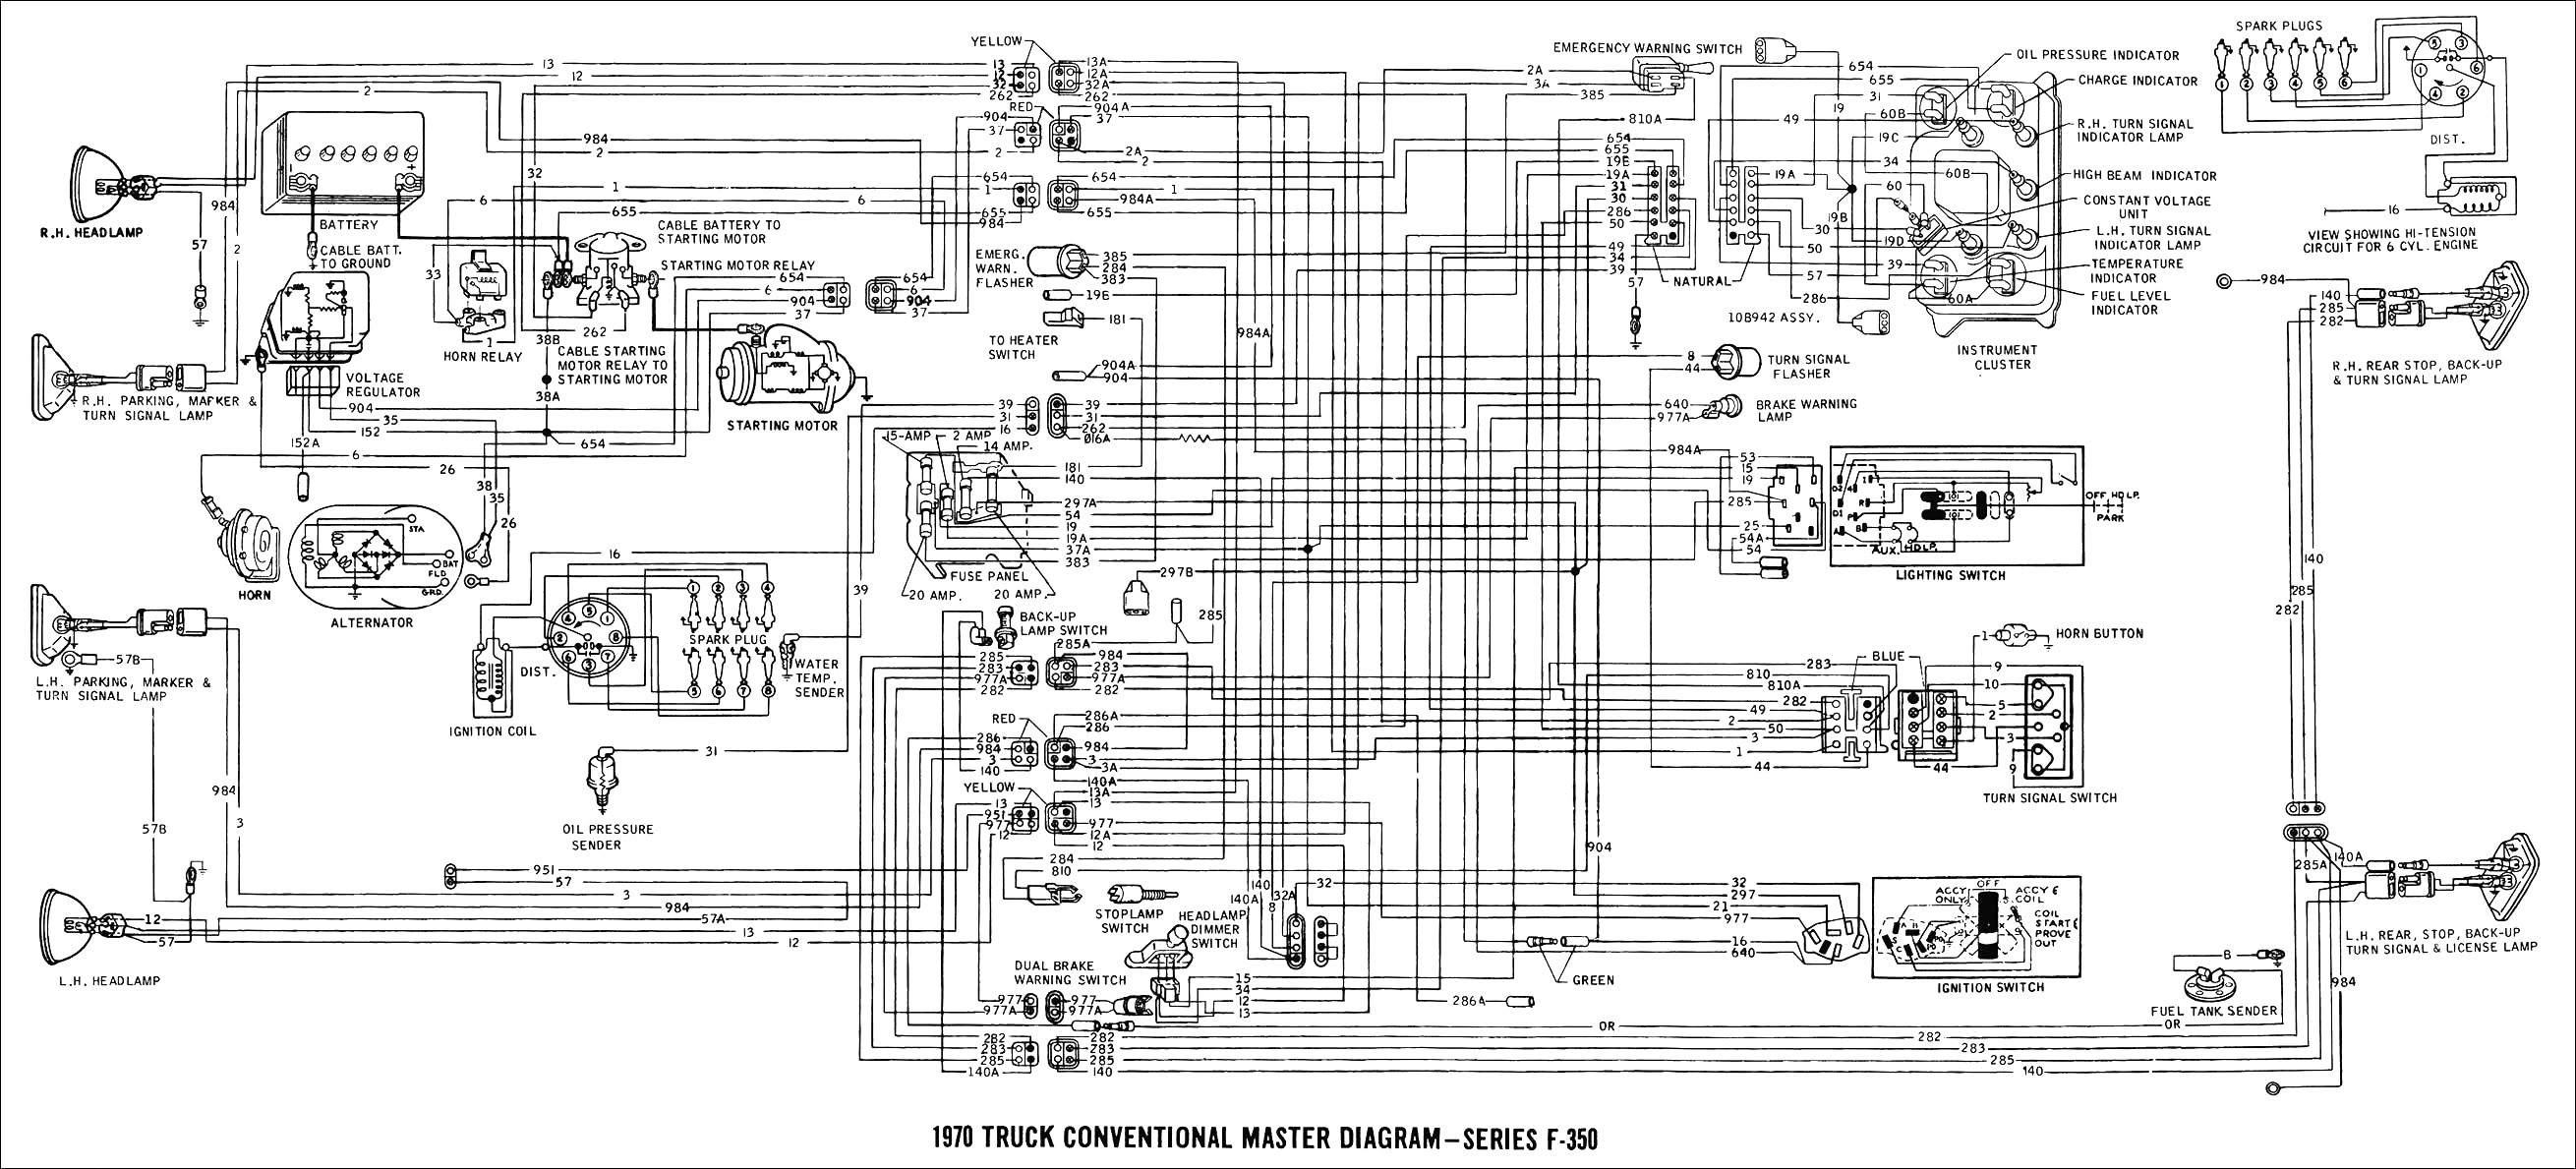 96 ford Explorer Engine Diagram I Need the Wiring Diagram for A 1996 ford Explorer Radio 1997 Also Of 96 ford Explorer Engine Diagram